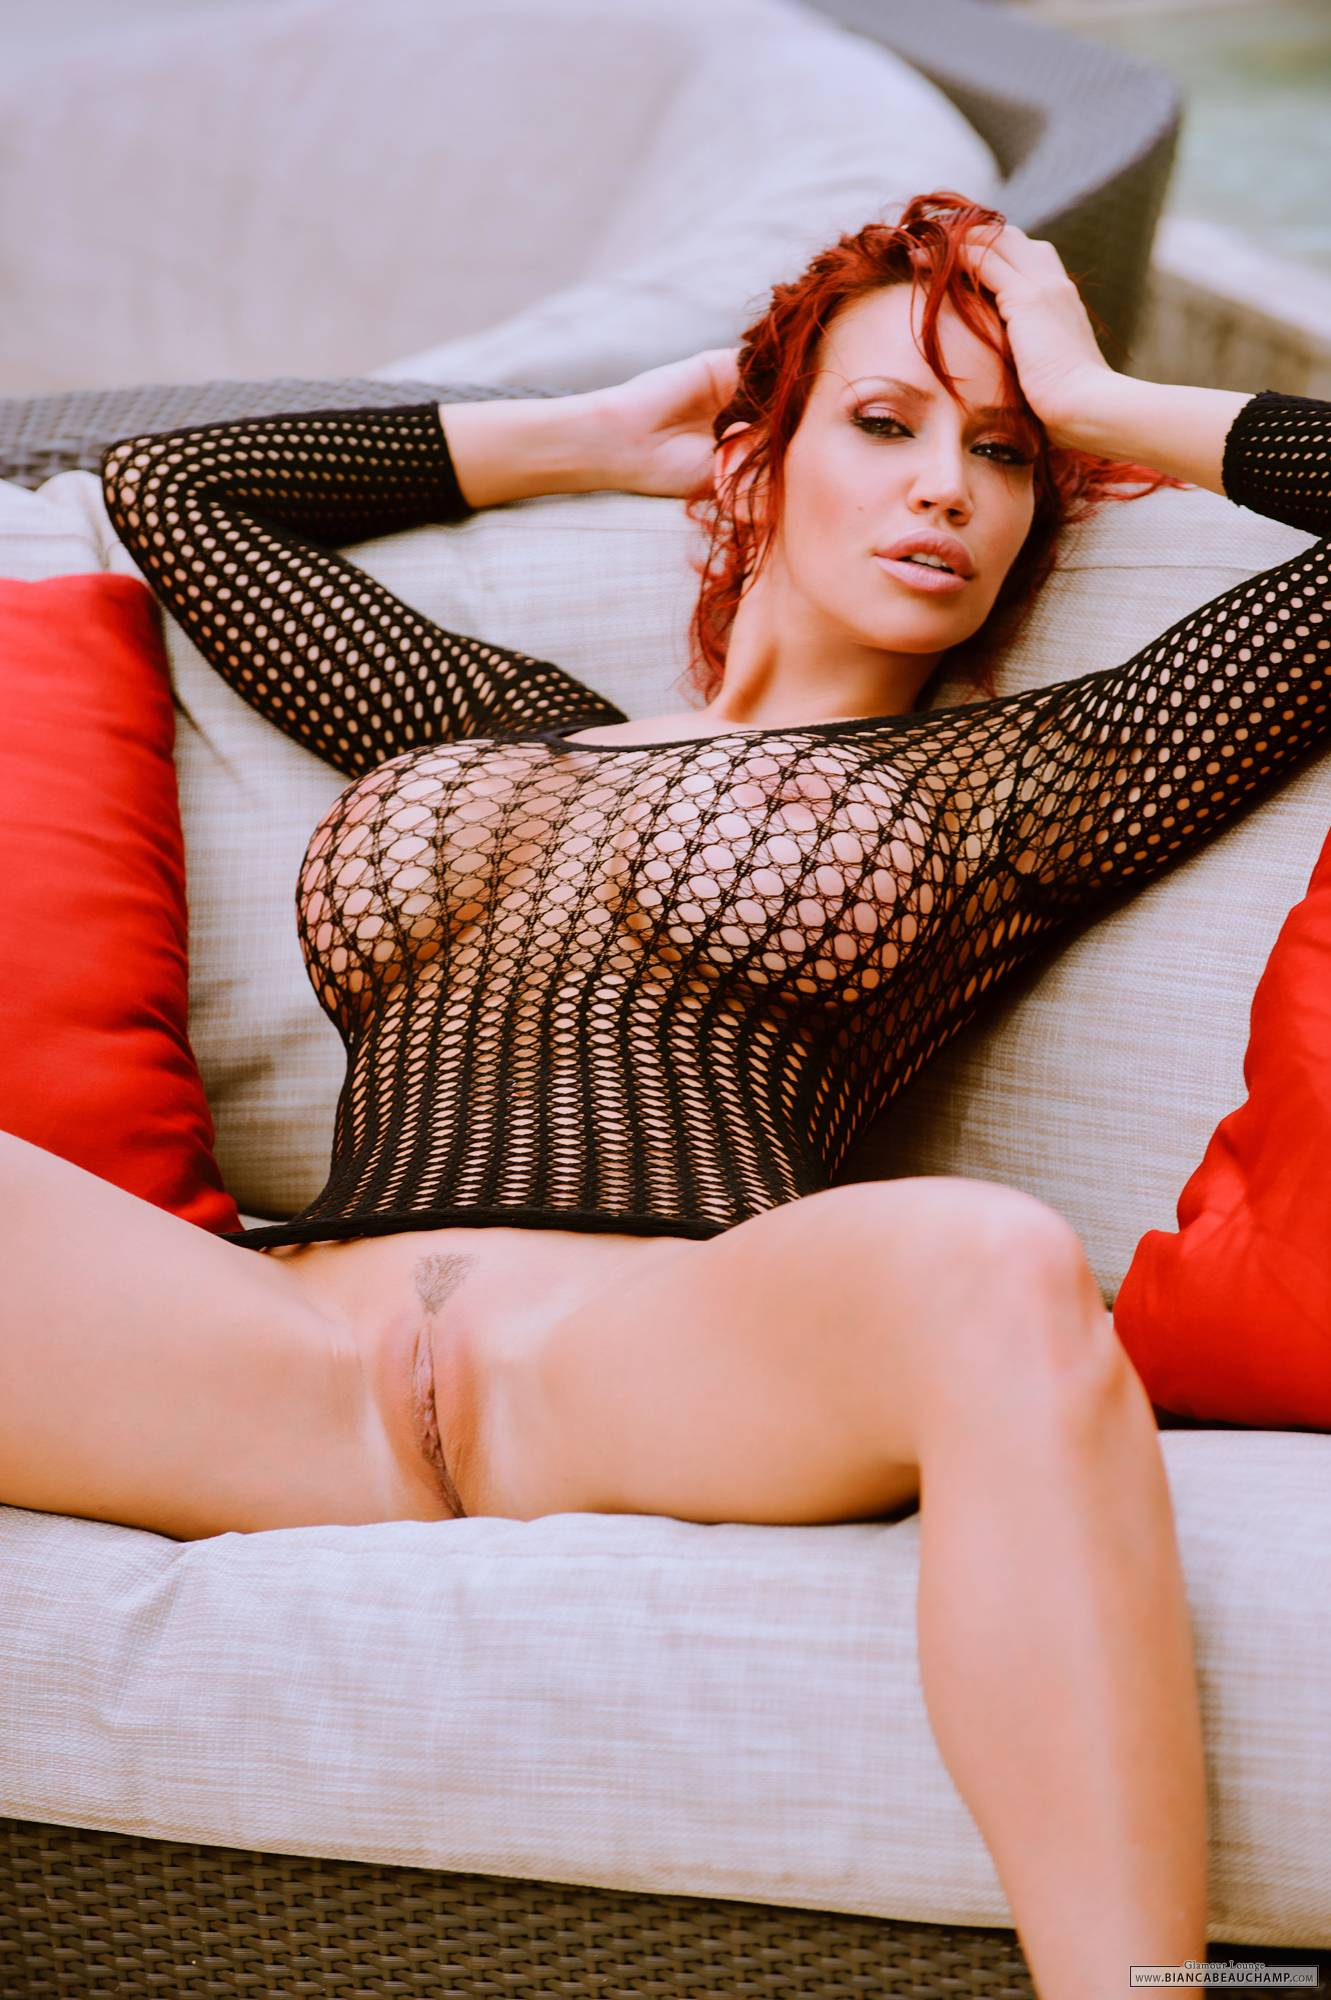 Bianca beauchamp gallery